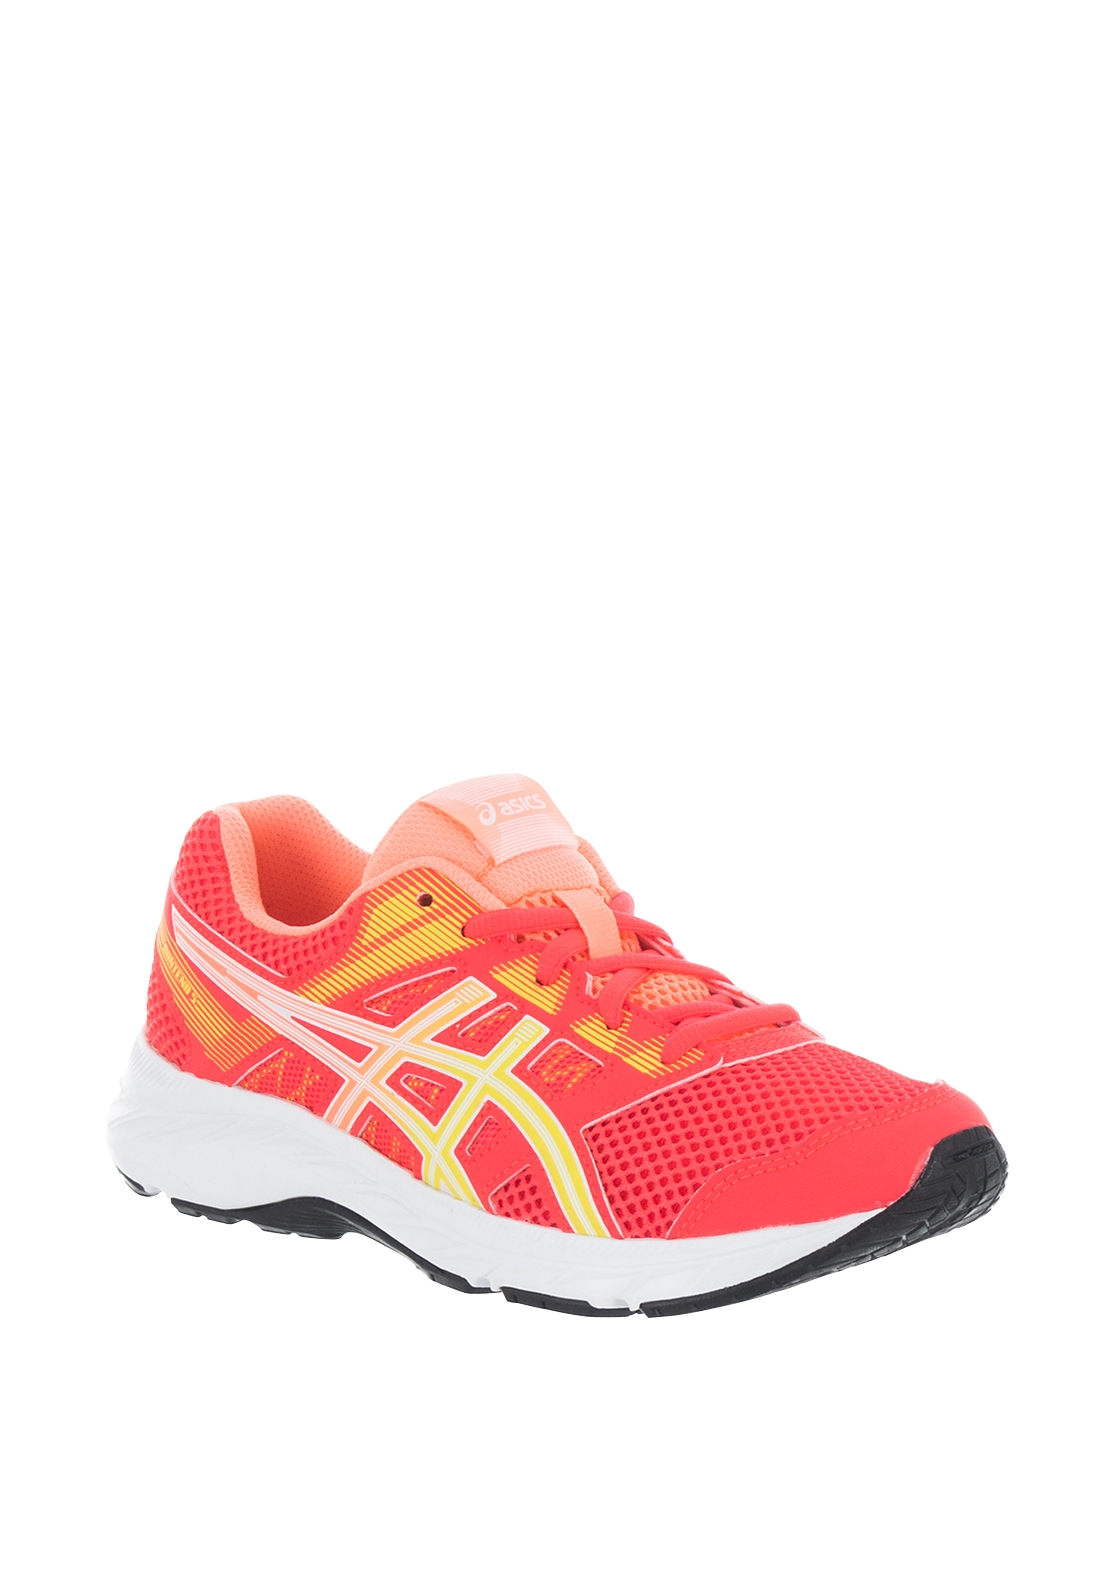 Asics Girls Contend 5 Trainers, Coral